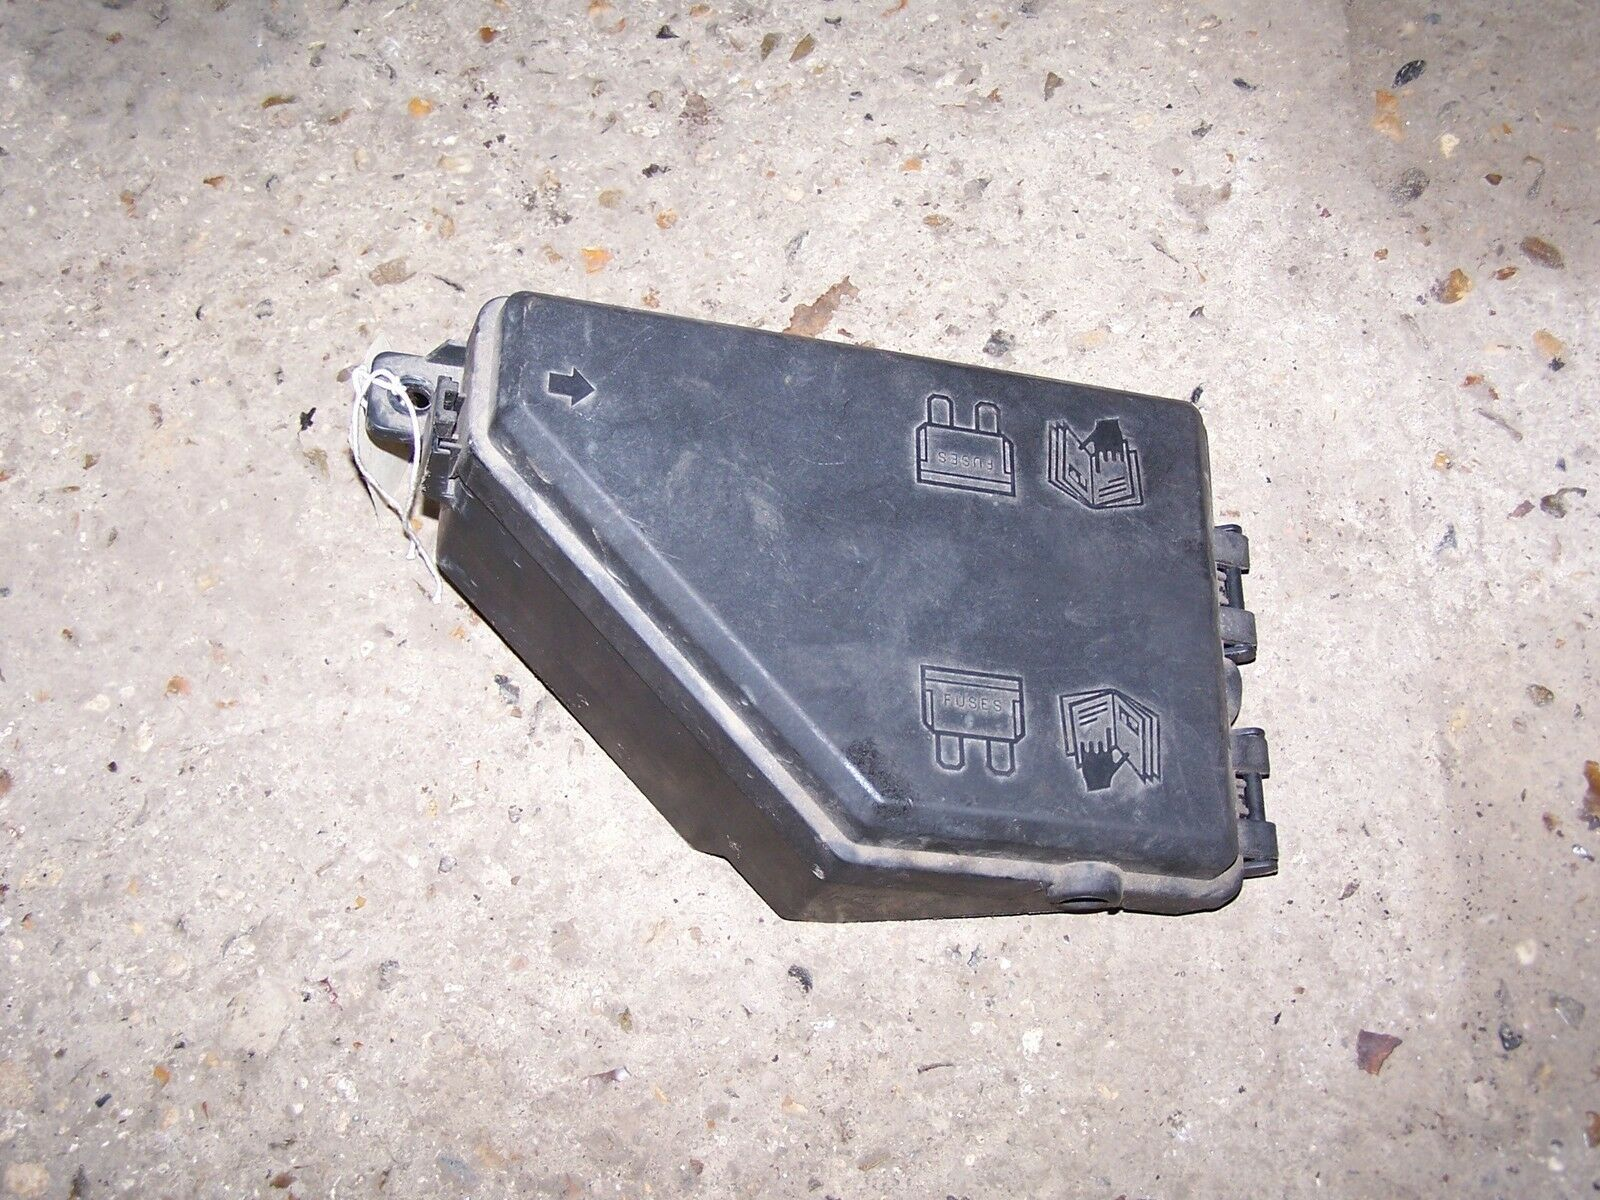 Fuse Box Engine Bay Land Rover Freelander 1 1995 Picclick Uk 2004 Of 1only Available